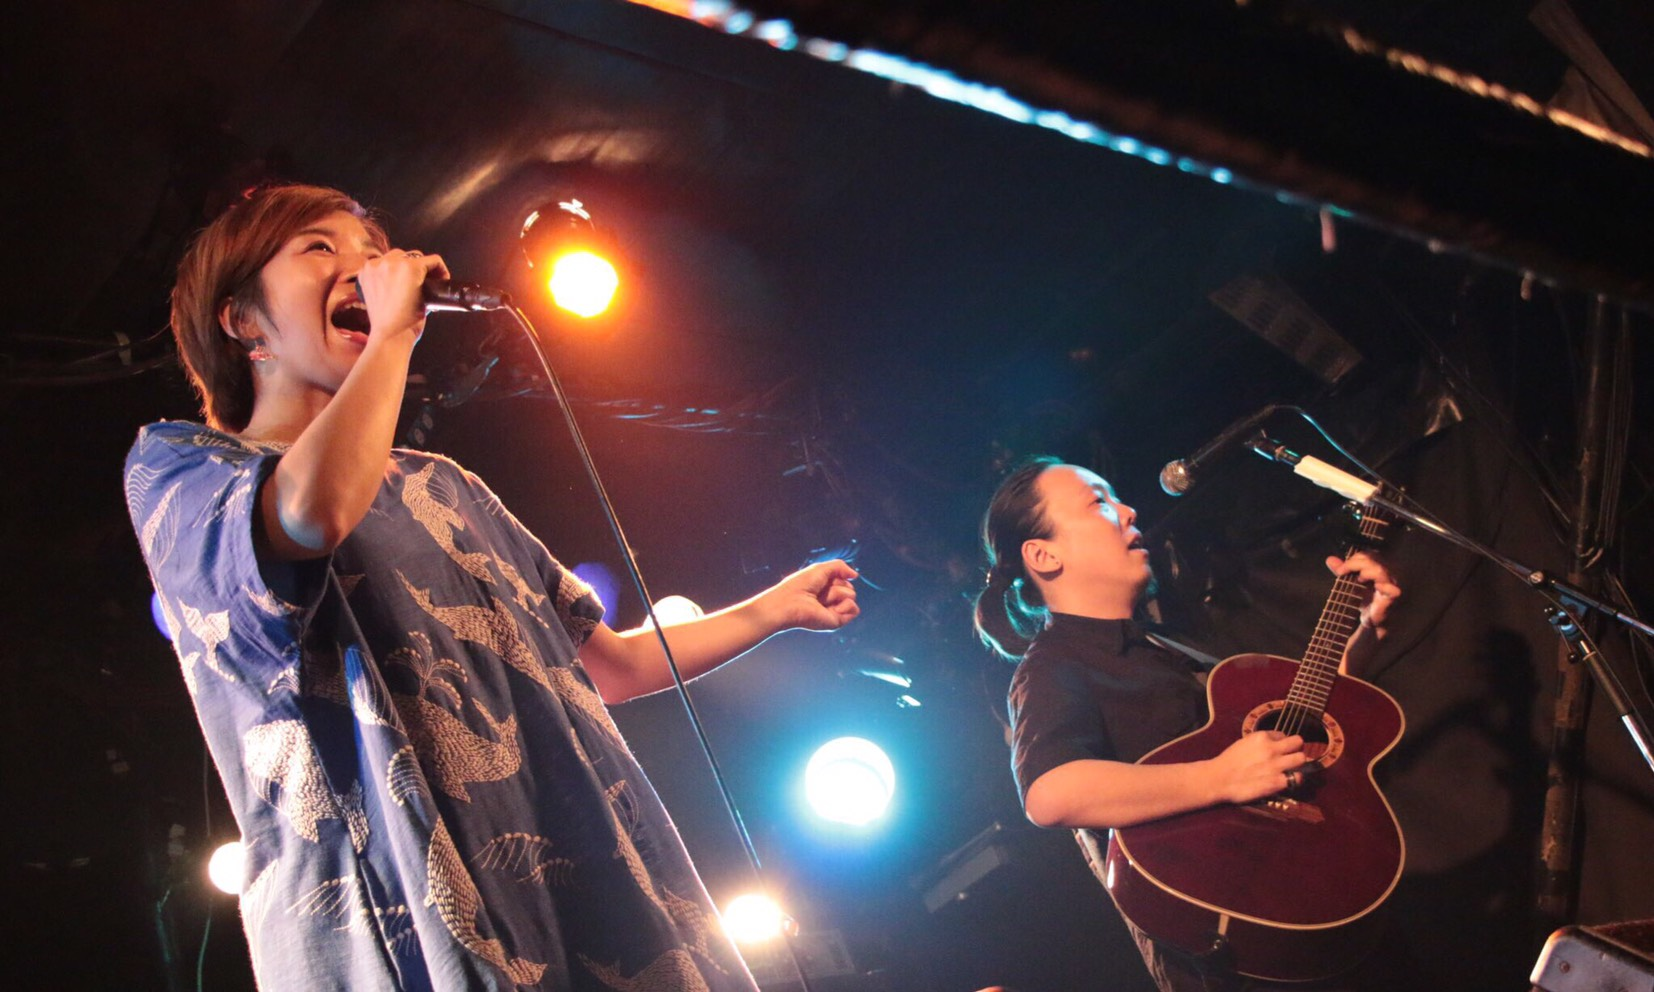 vivify presents 『We live with songs』